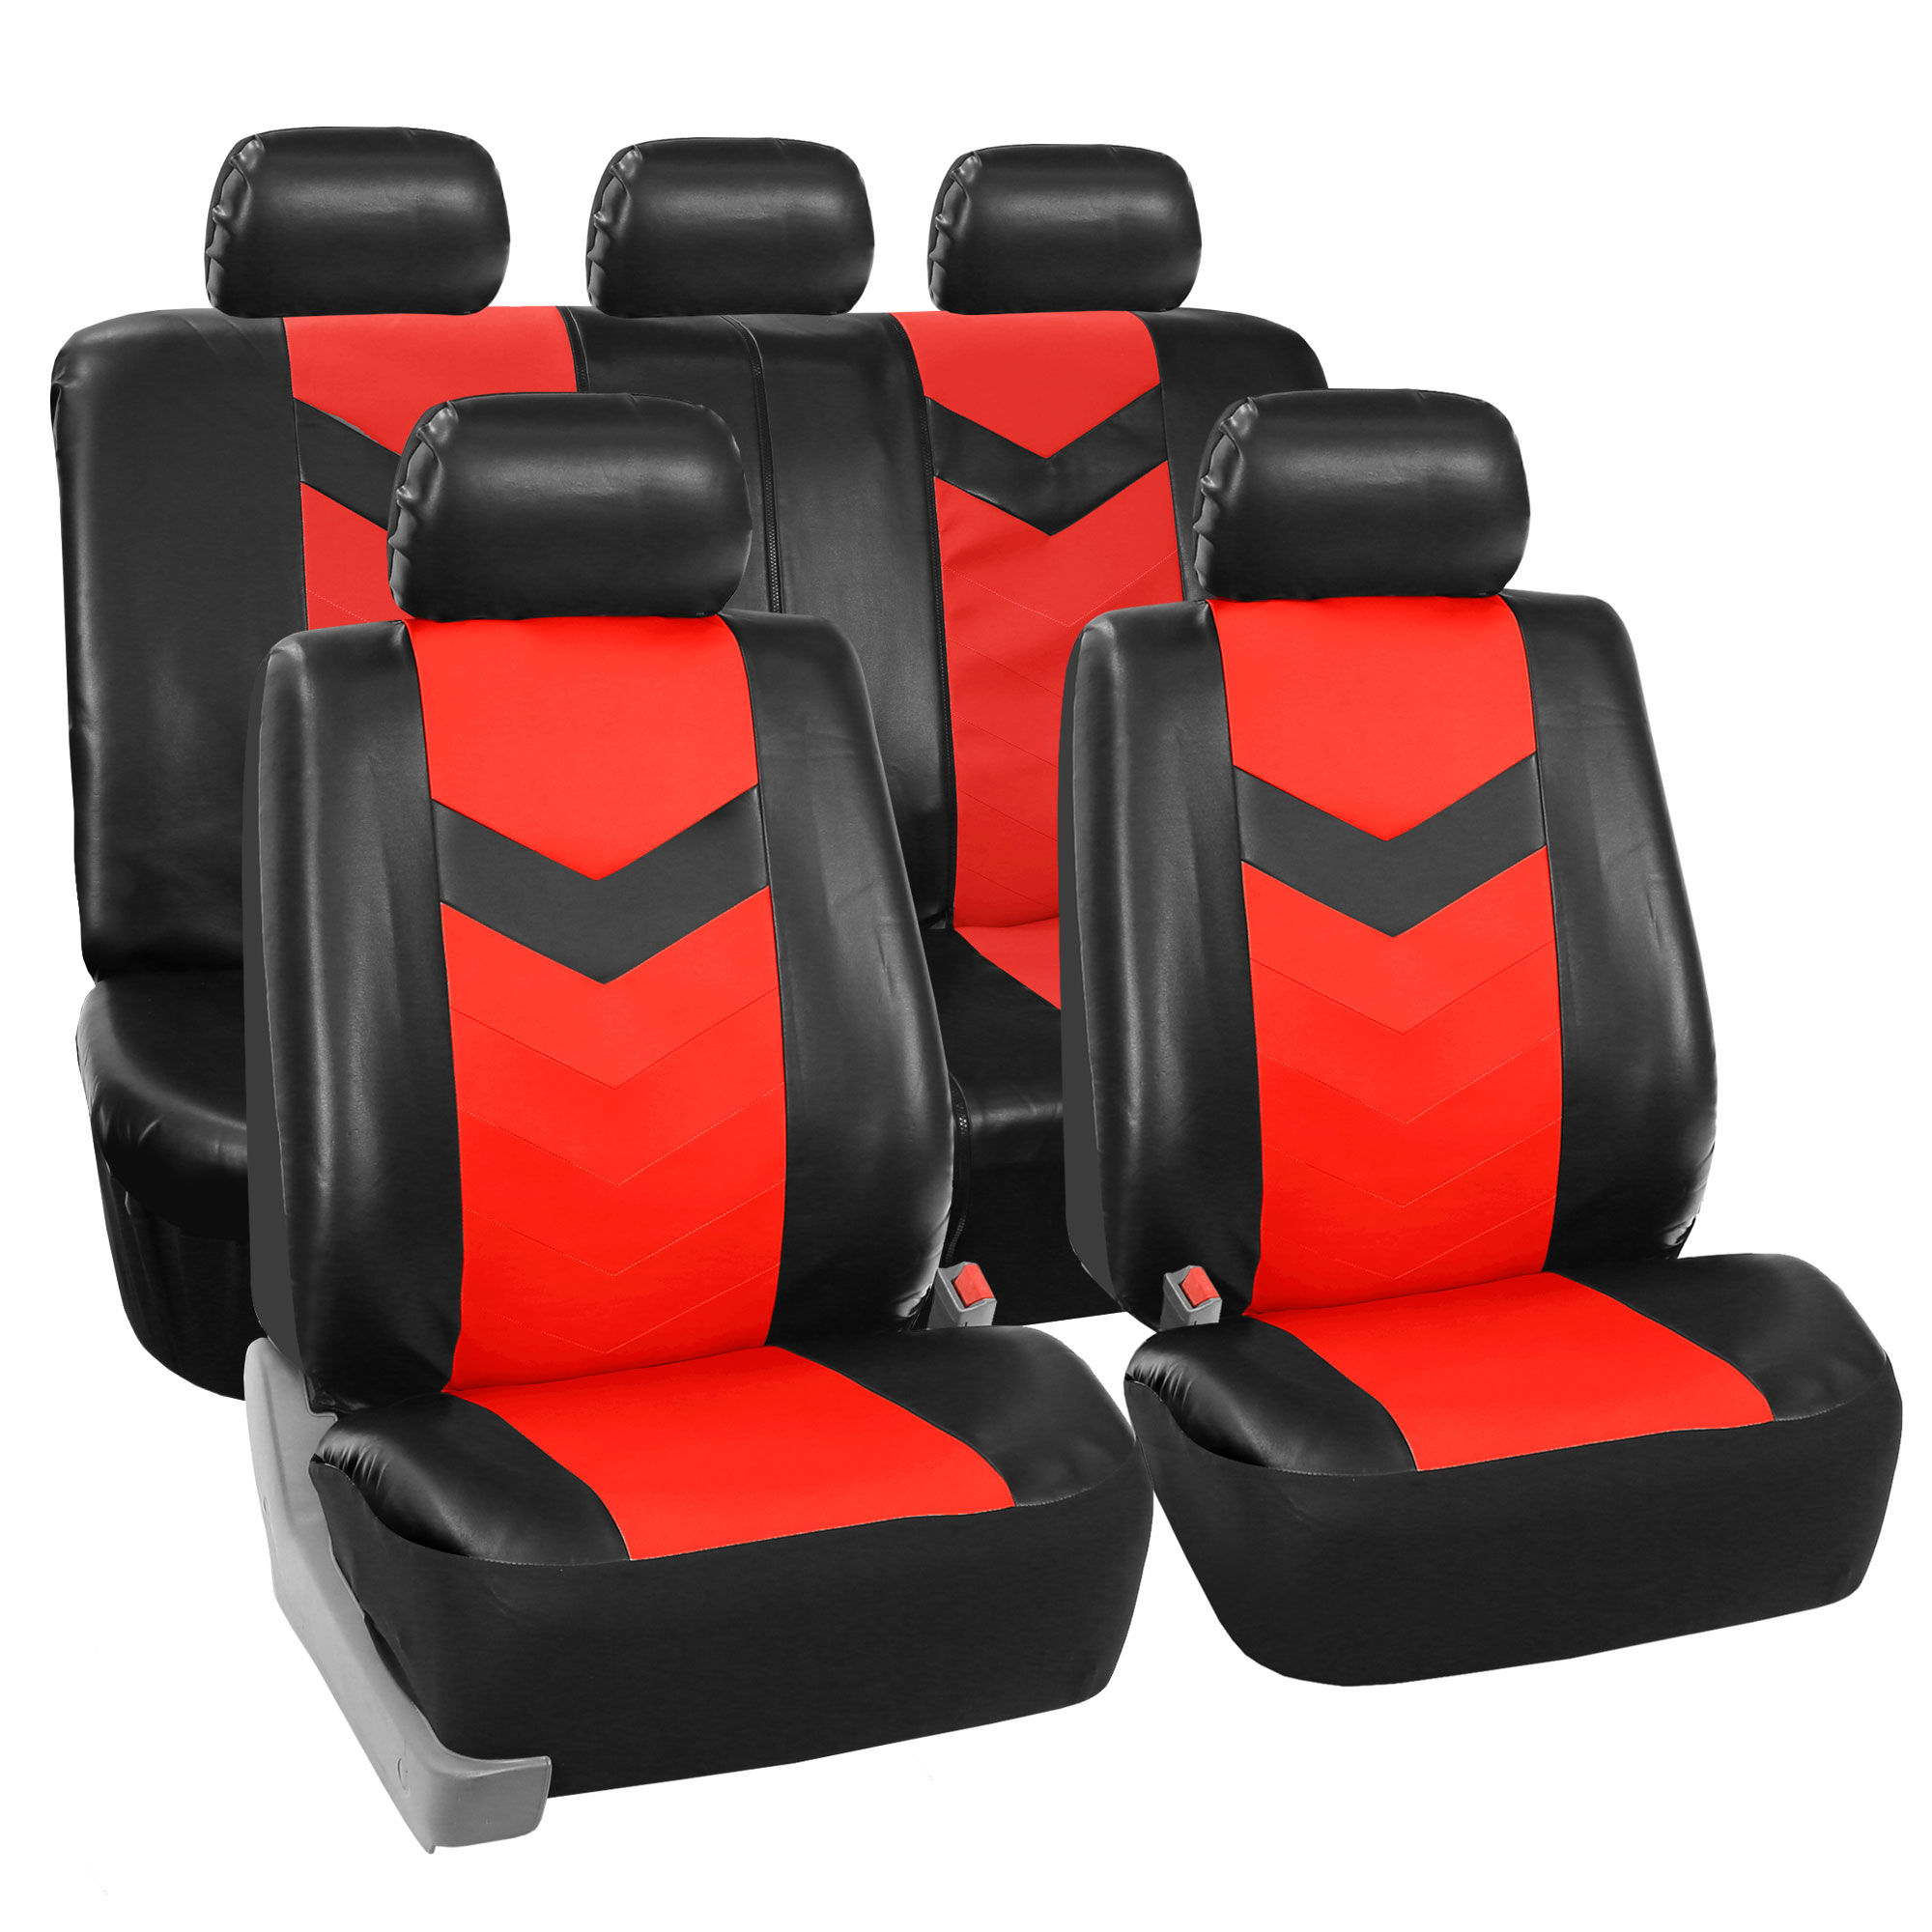 Faux Synthetic Leather Car Seat Covers For Auto Universal Fit Black Red